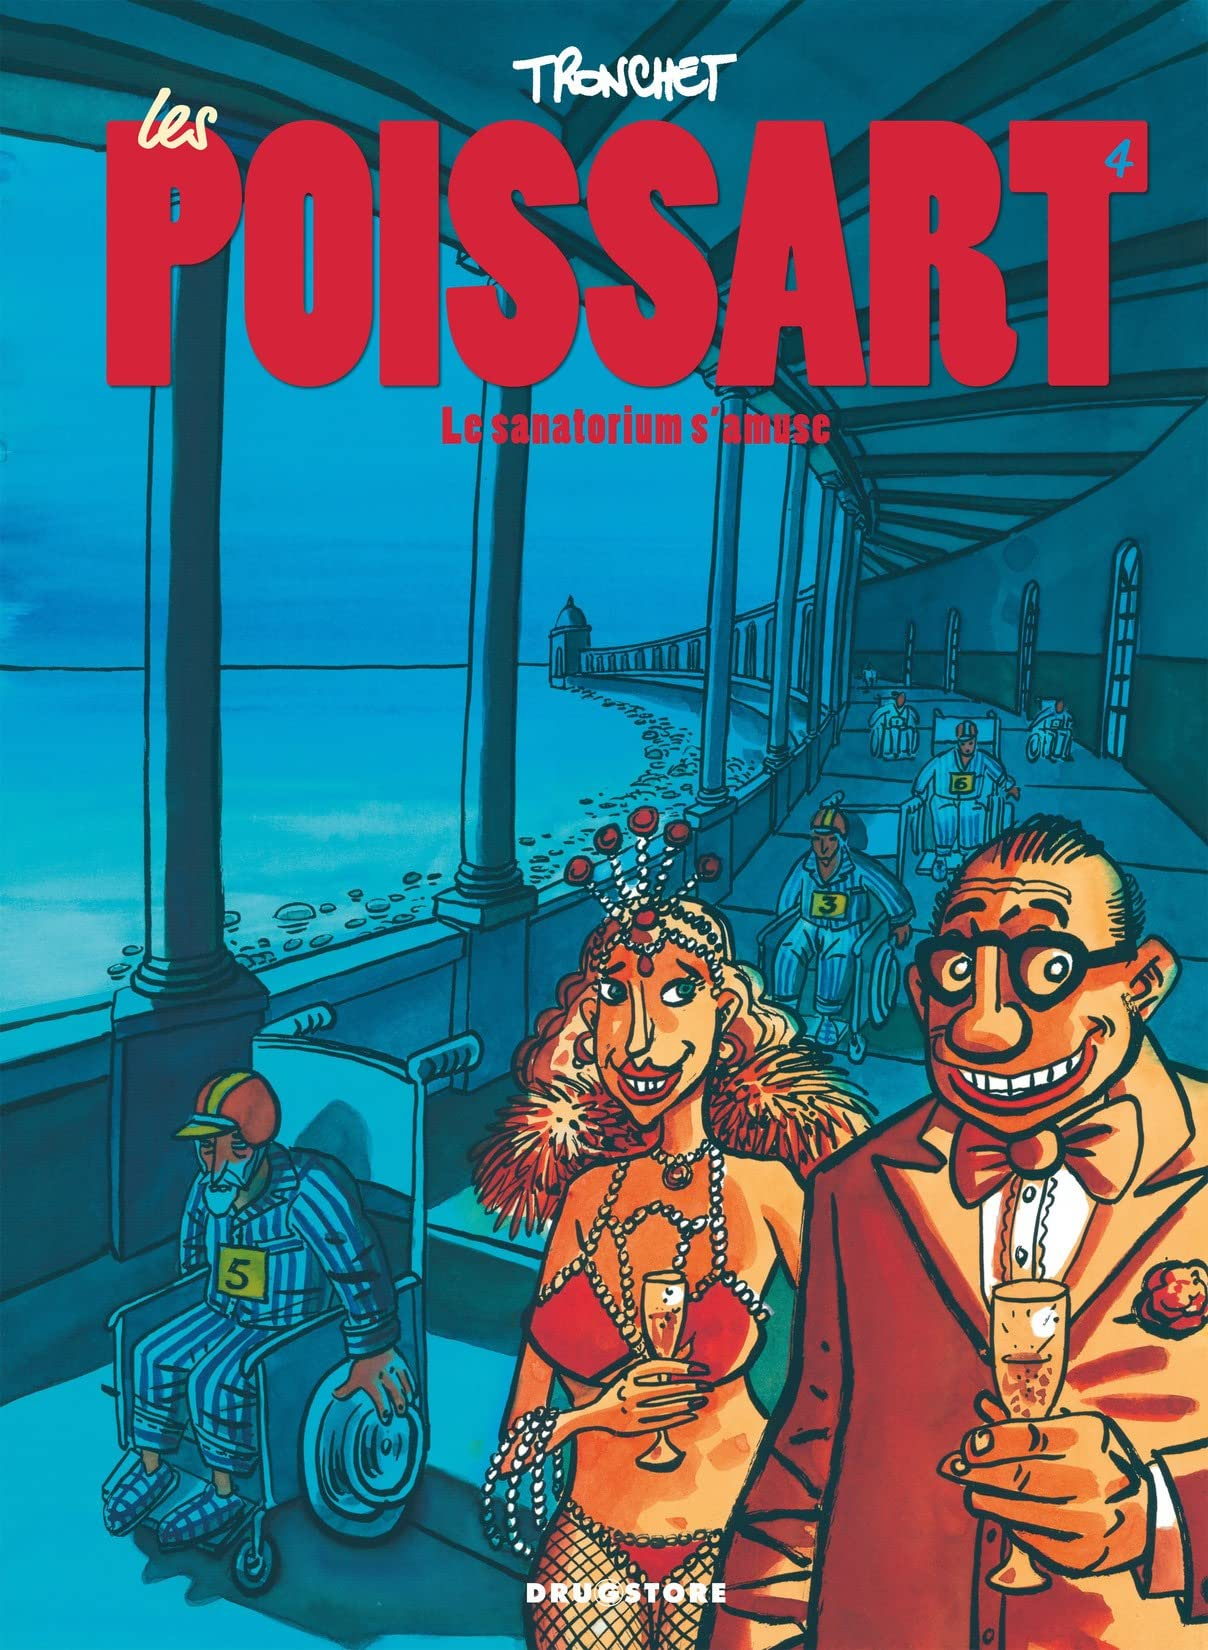 Les Poissart Vol. 4: Le sanatorium s'amuse